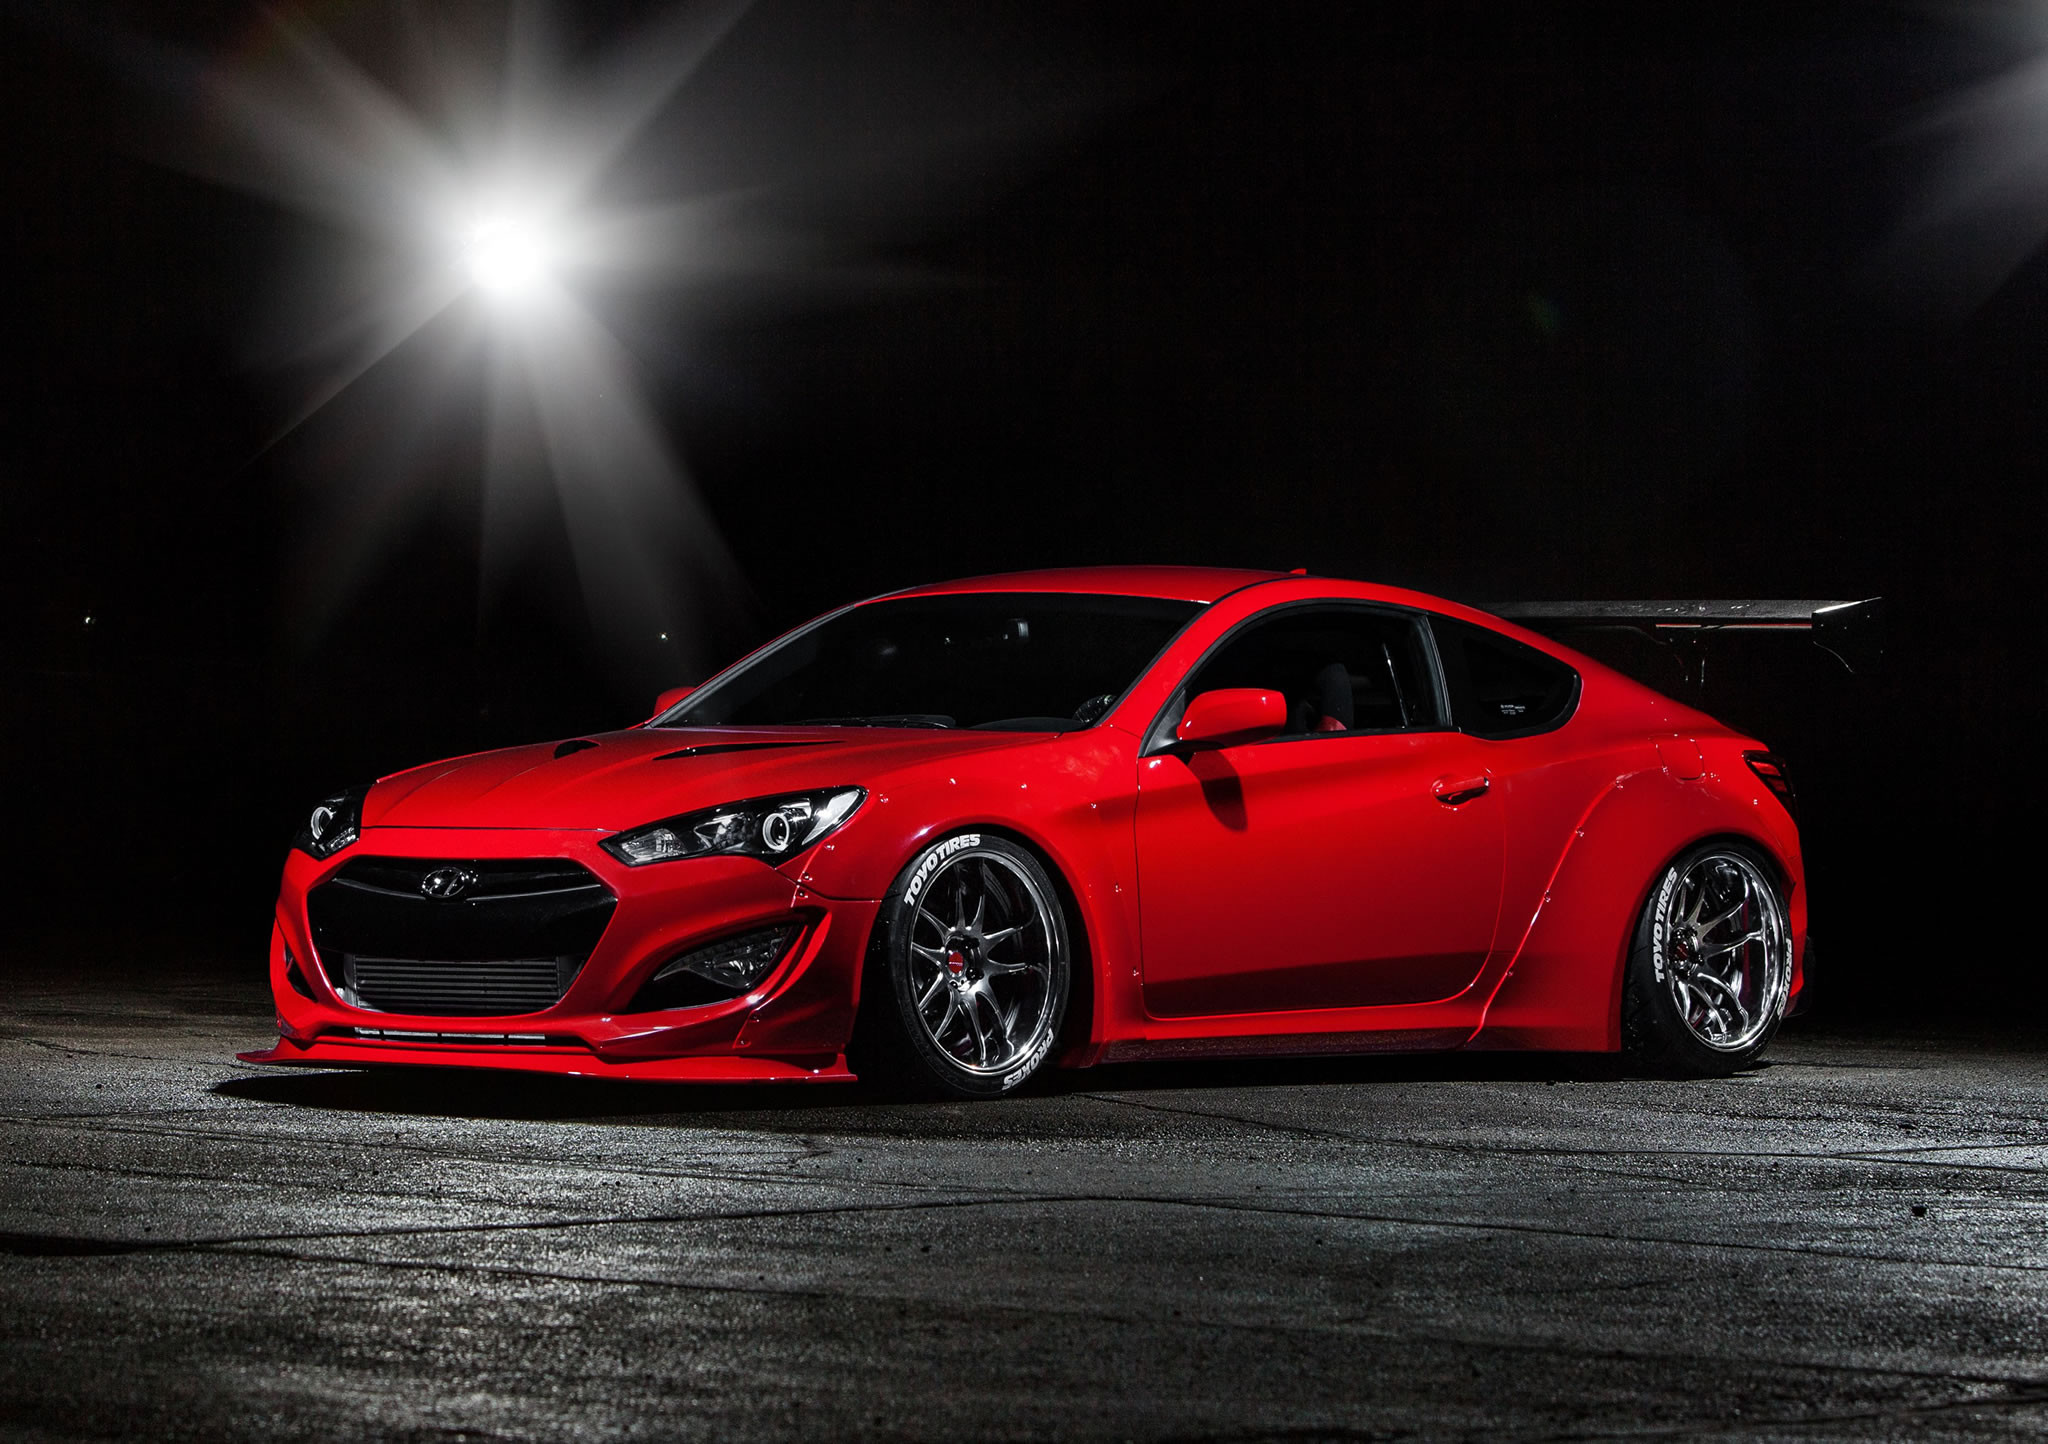 2014 Hyundai Genesis Coupe By Blood Type Racing Front